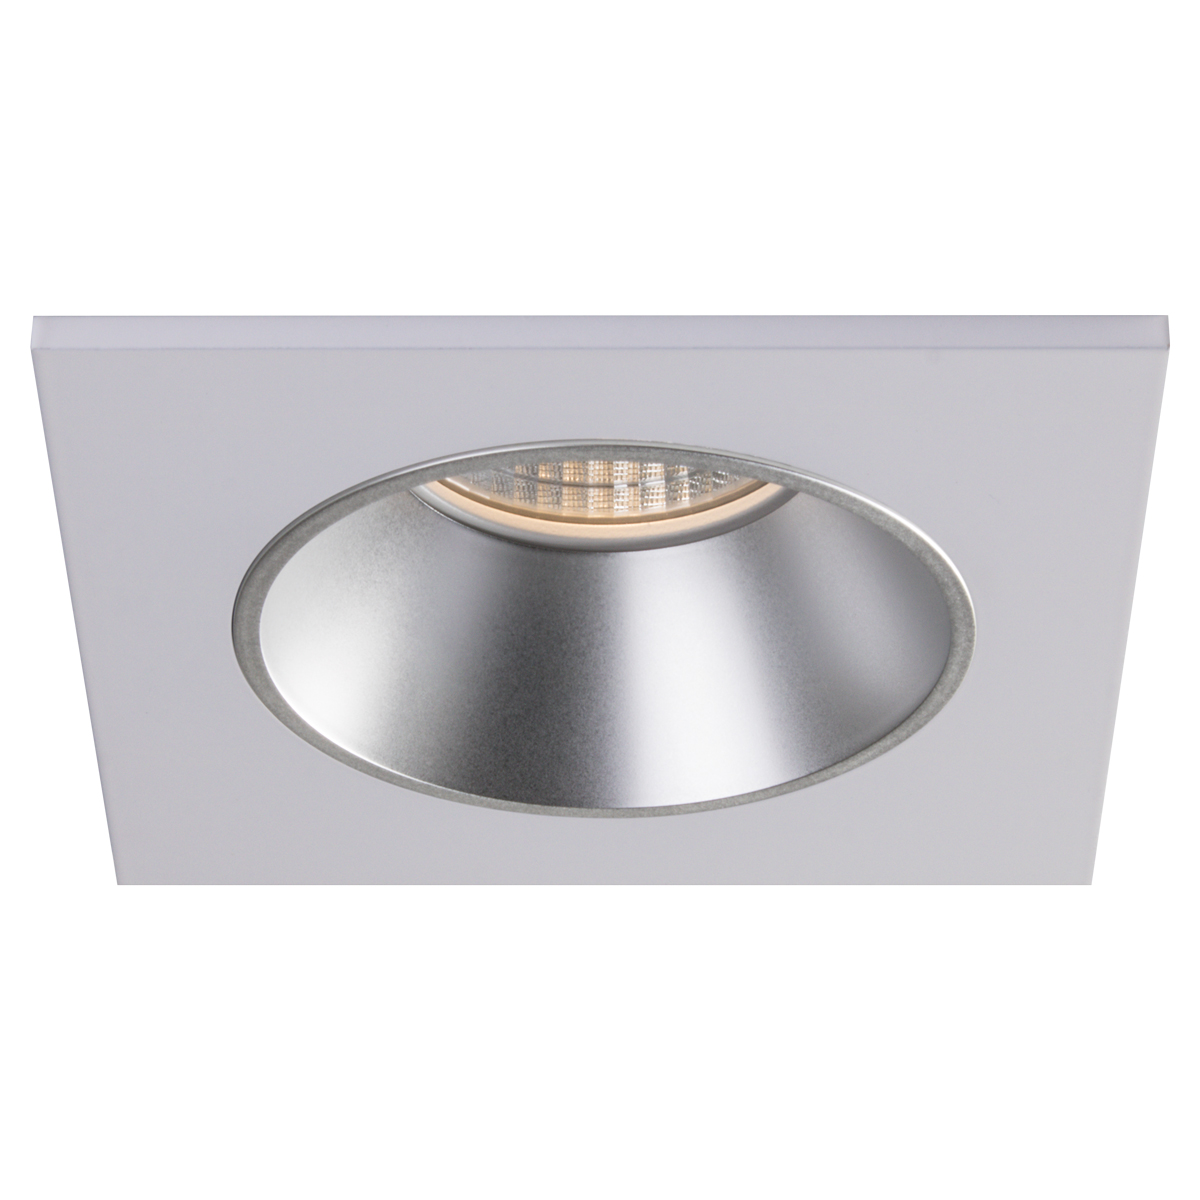 SIGMA 2 Square Deep Regressed LED Fixture